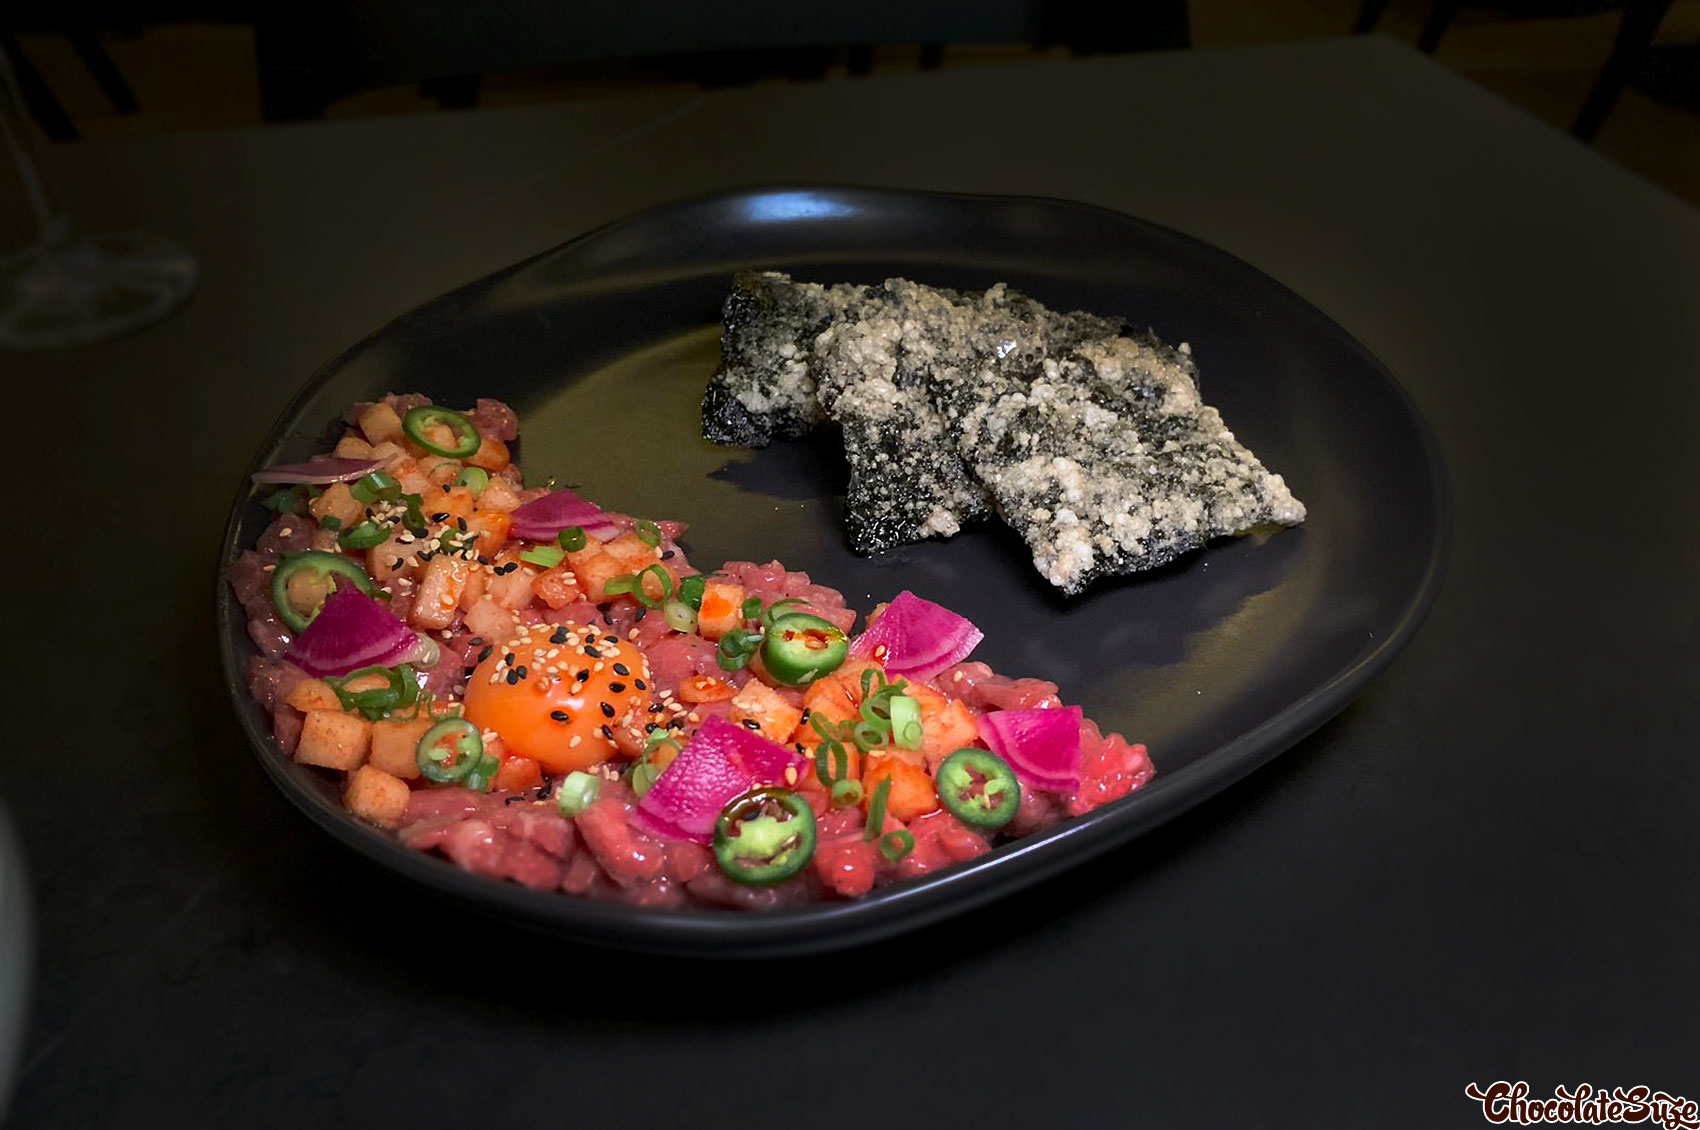 Wagyu beef tartare at Soul Dining, Surry Hills